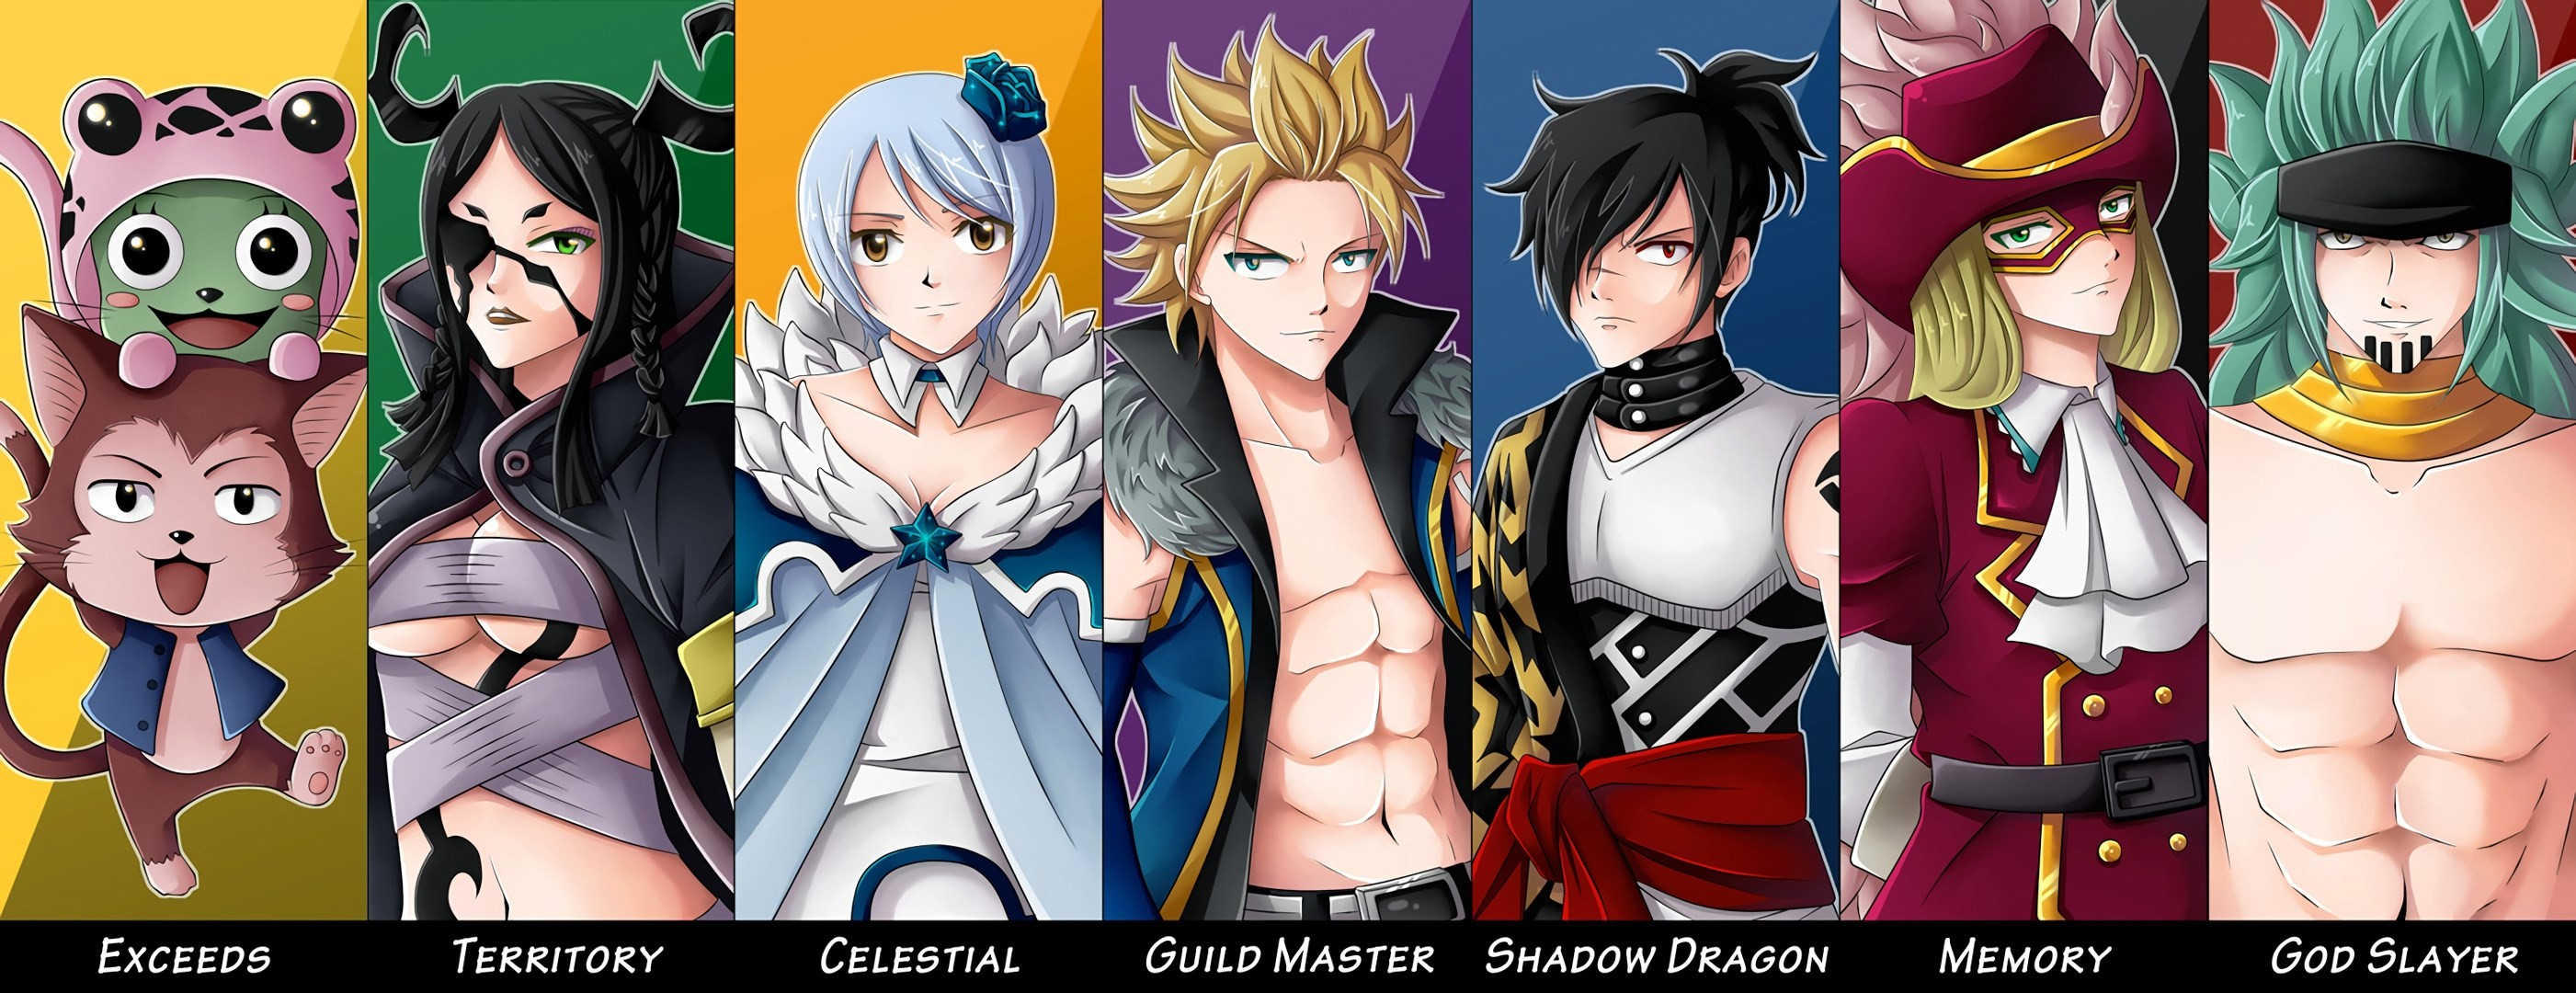 2802x1080 hd wallpaper fairy tail - fairy tail category